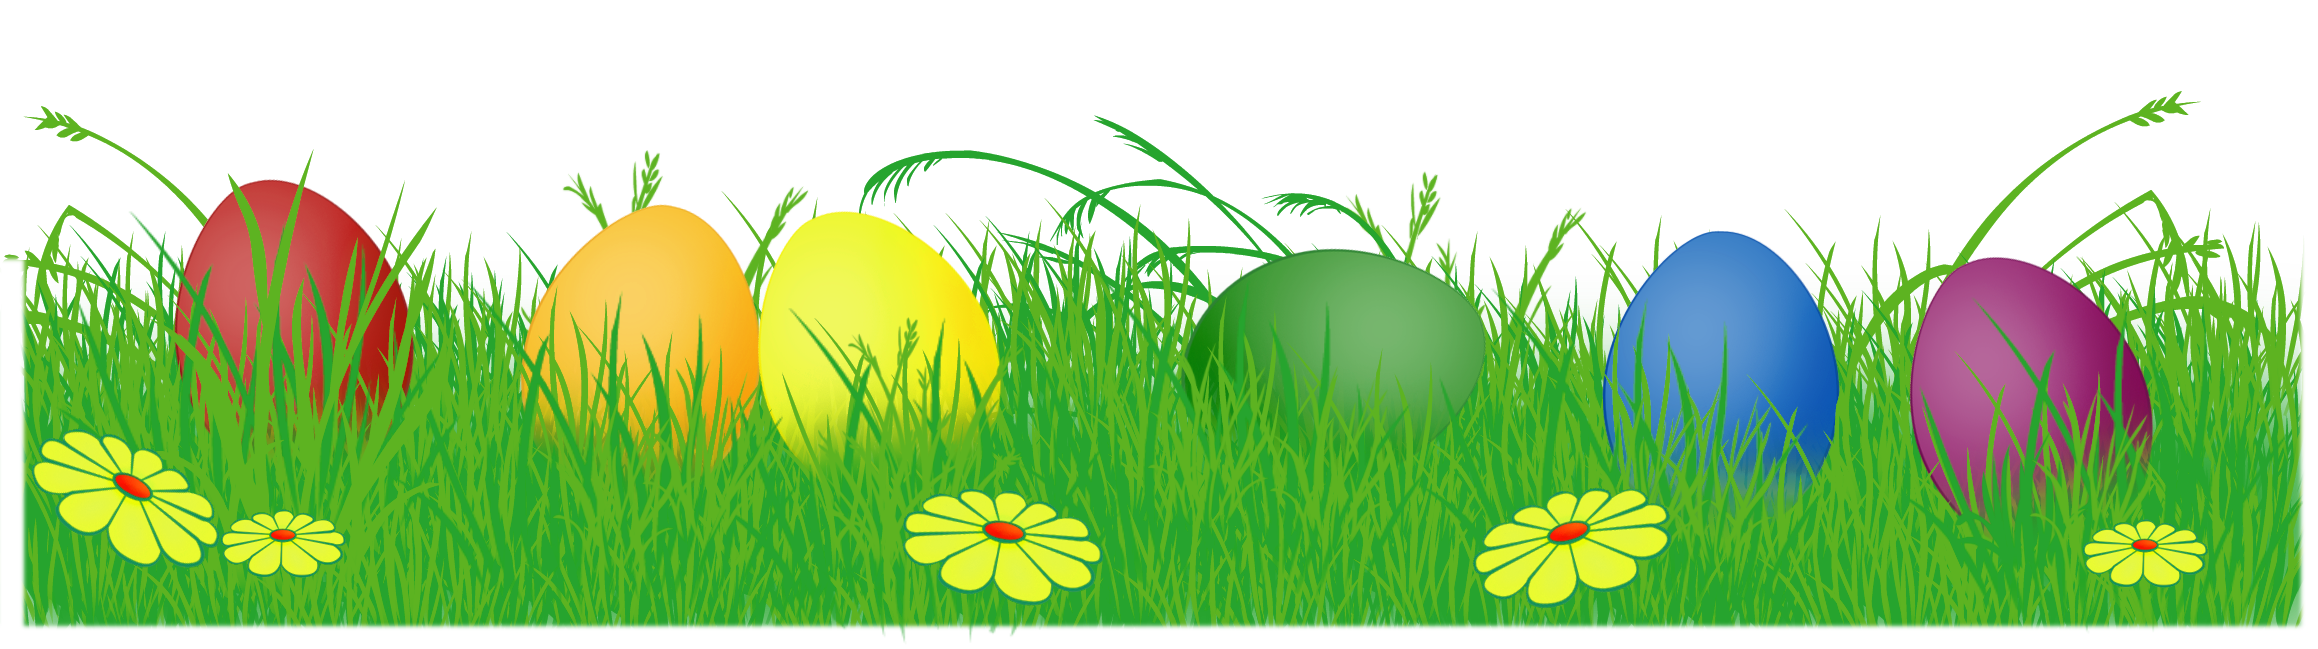 Easter grass png. Eggs with clipart picture